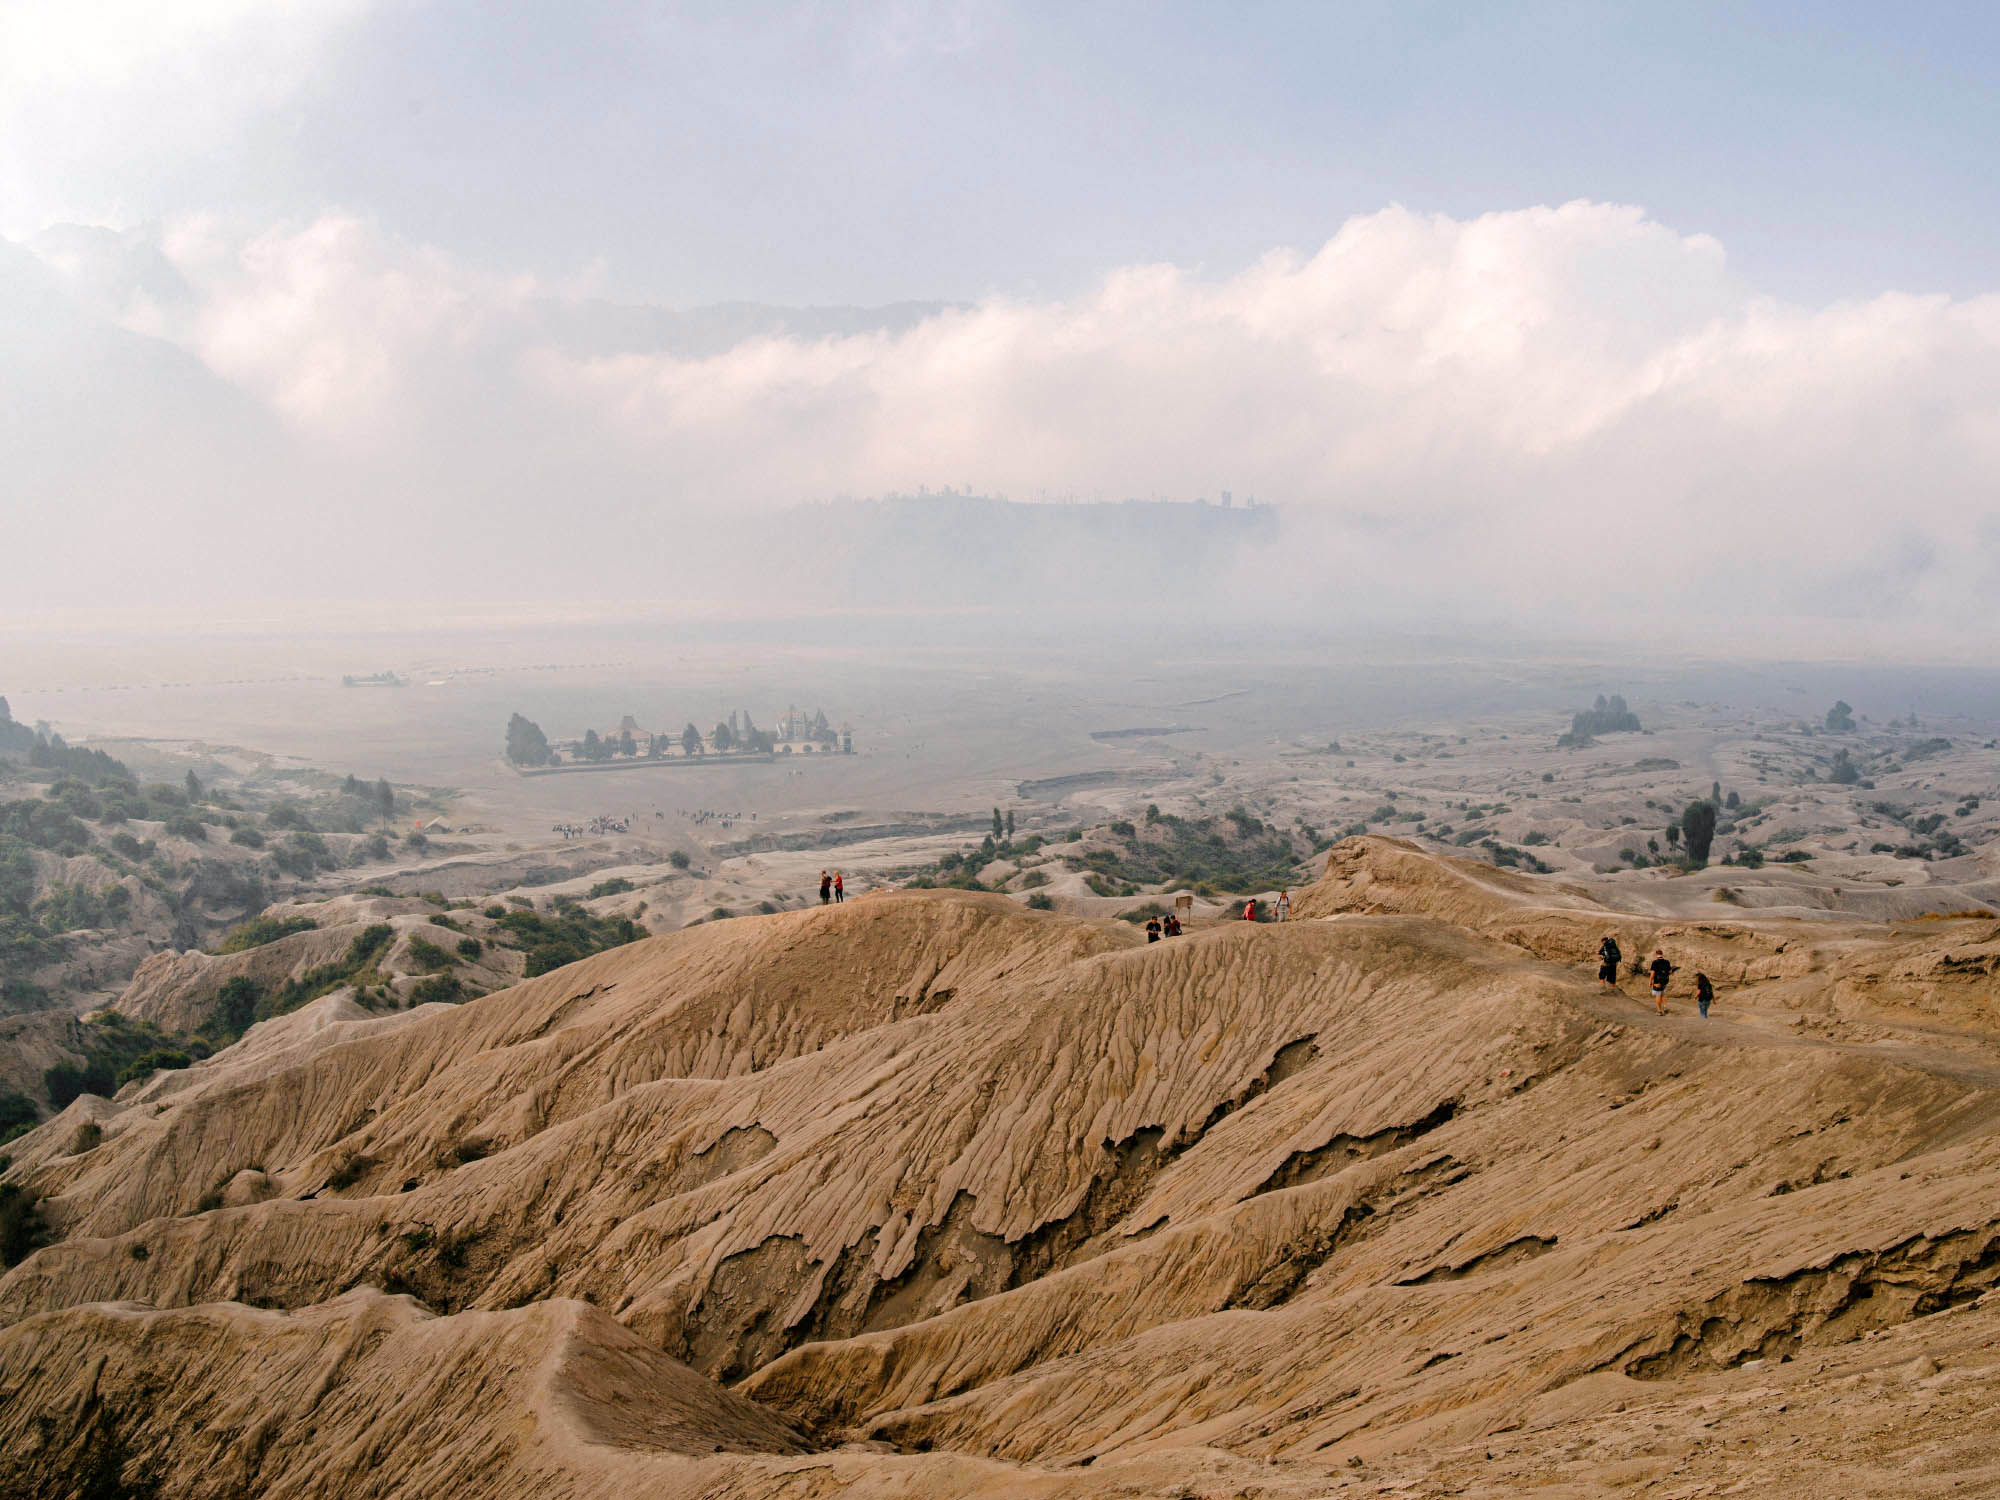 joris-hermans-photography-bromo-07.jpg